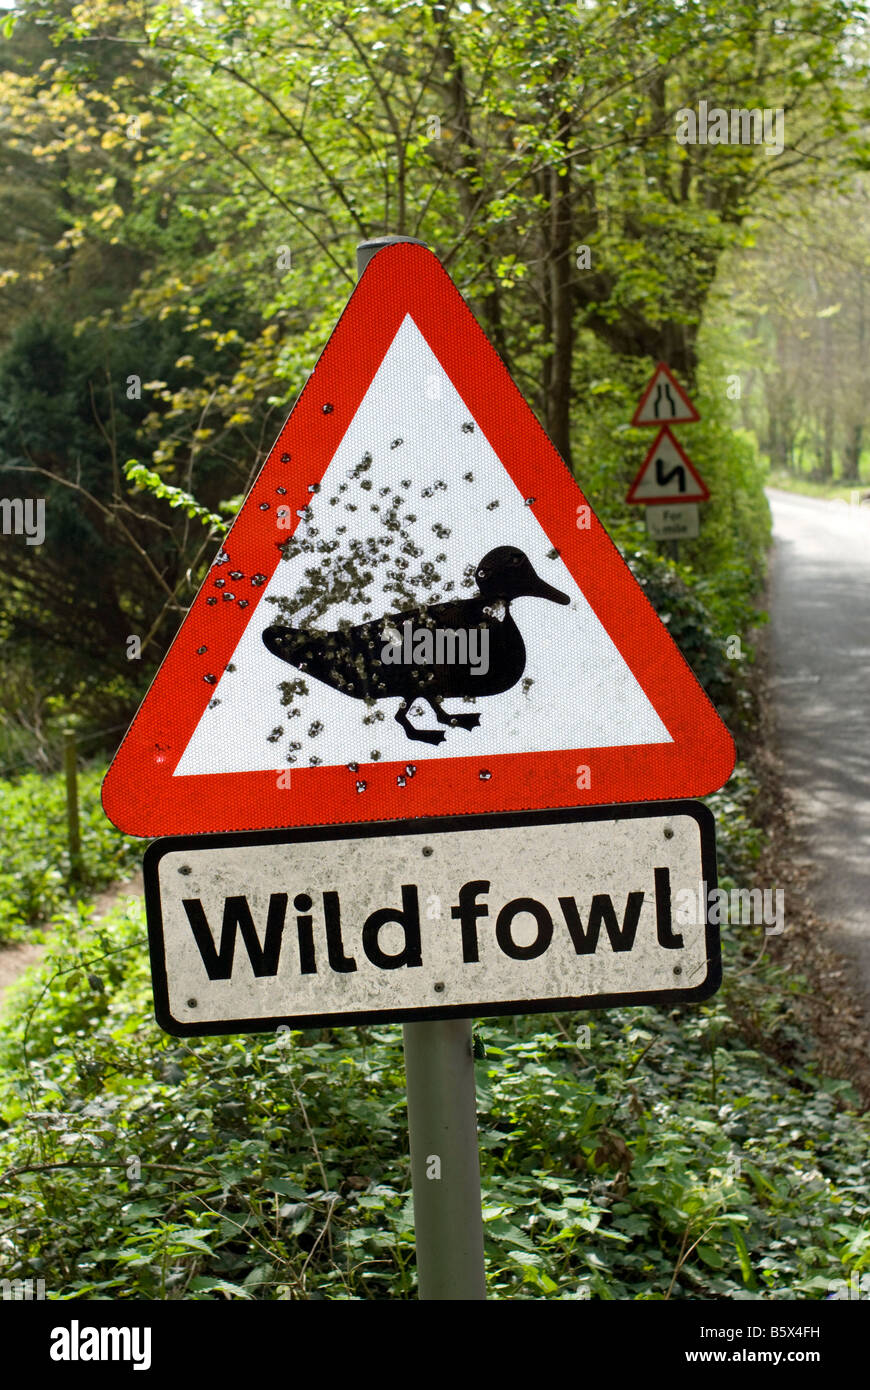 A road sign warning of wild fowl crossing peppered with bulletholes - shotgun pellets - at Blackpool Sands Devon - Stock Image